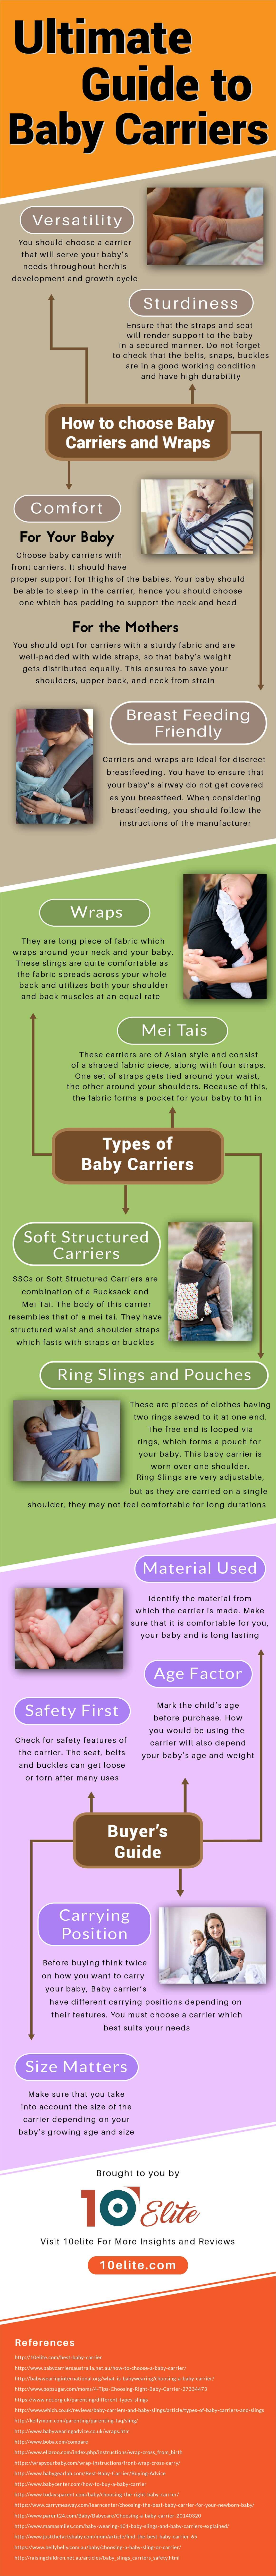 Ultimate-Guid-to-Baby-Carriers-and-wraps-infographic-plaza